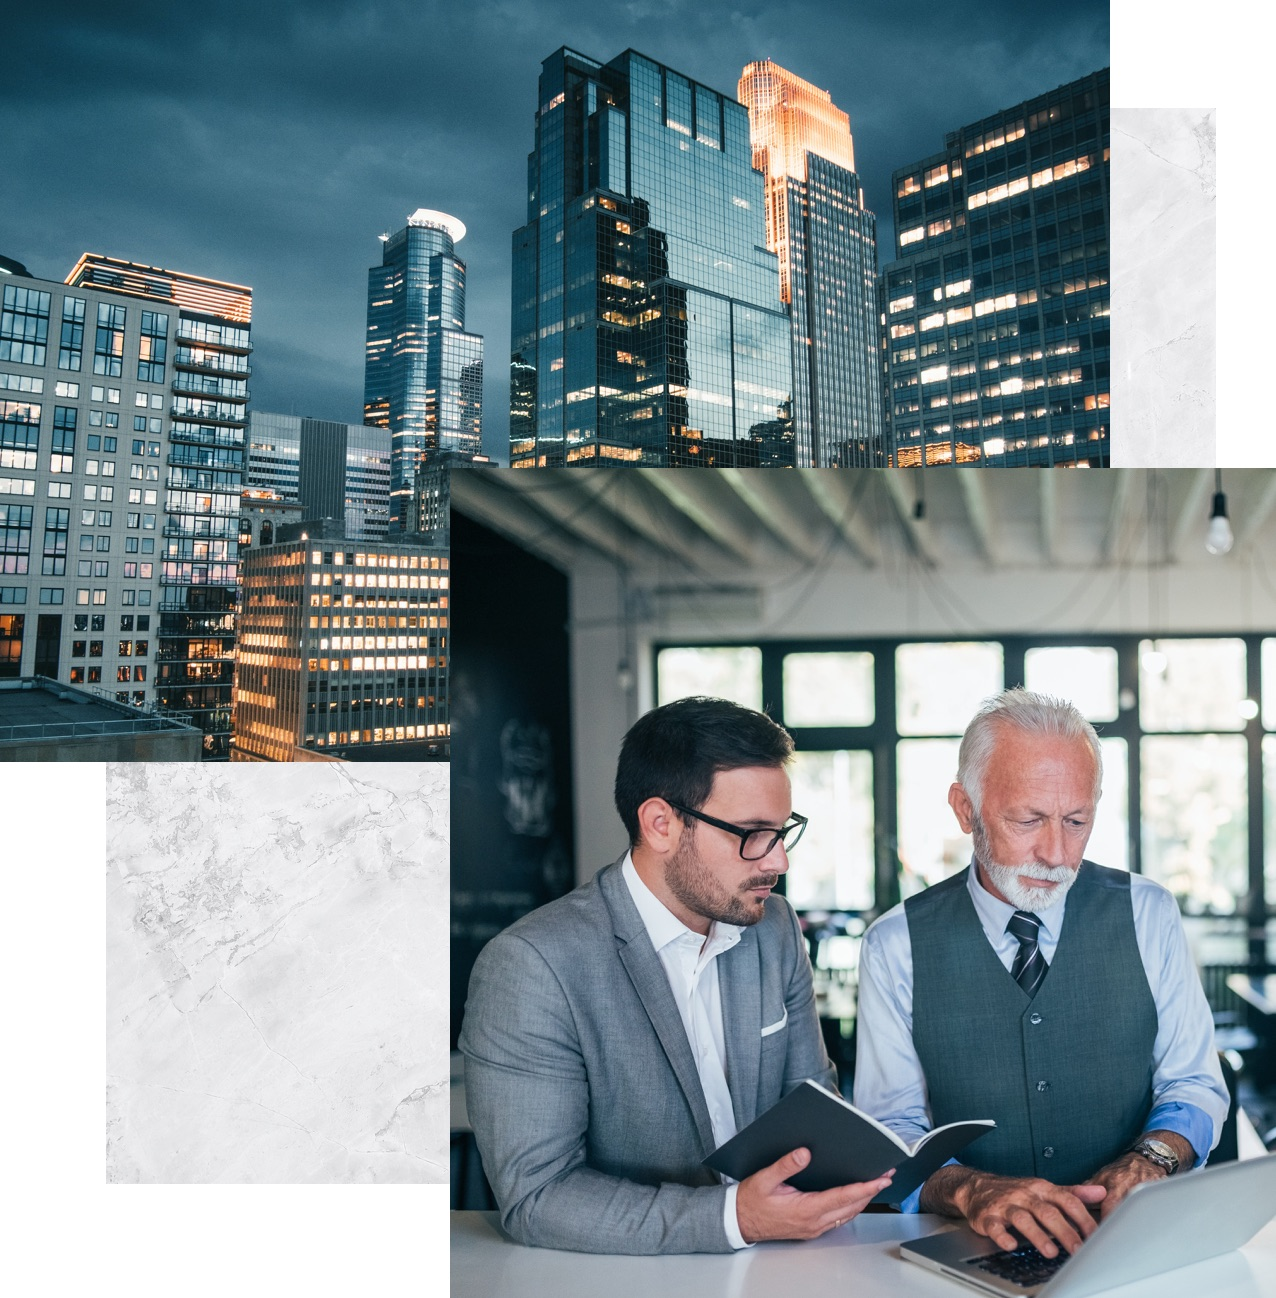 buildings and two men looking at a laptop